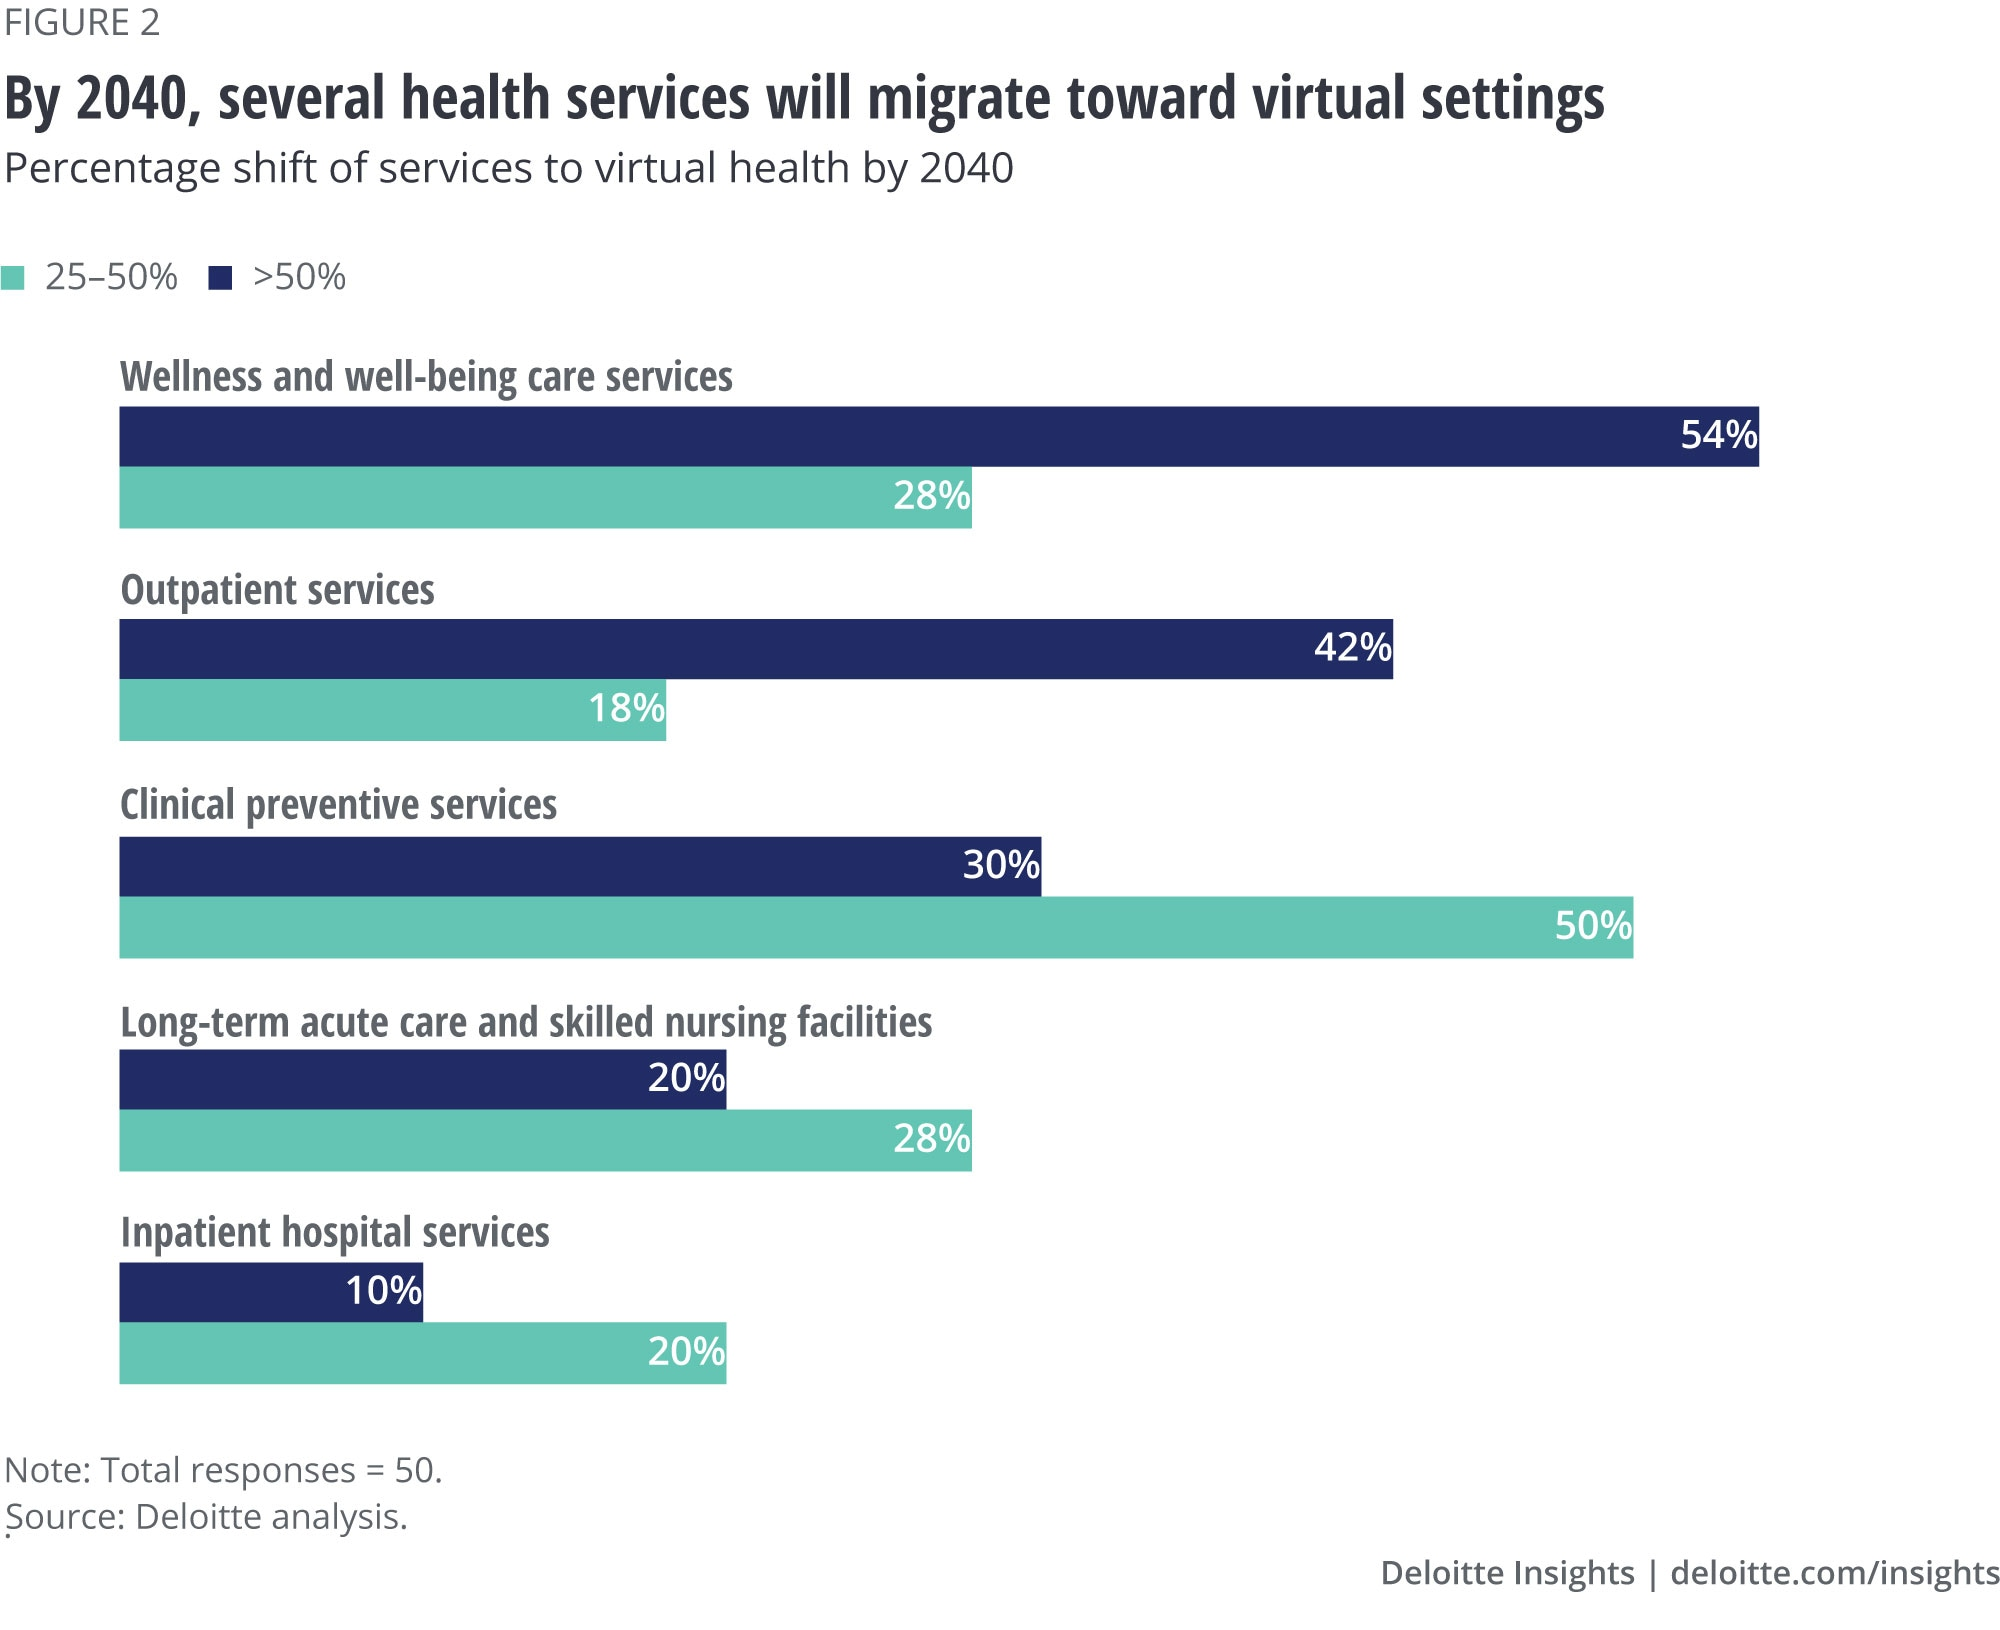 By 2040, several health services will migrate toward virtual setting